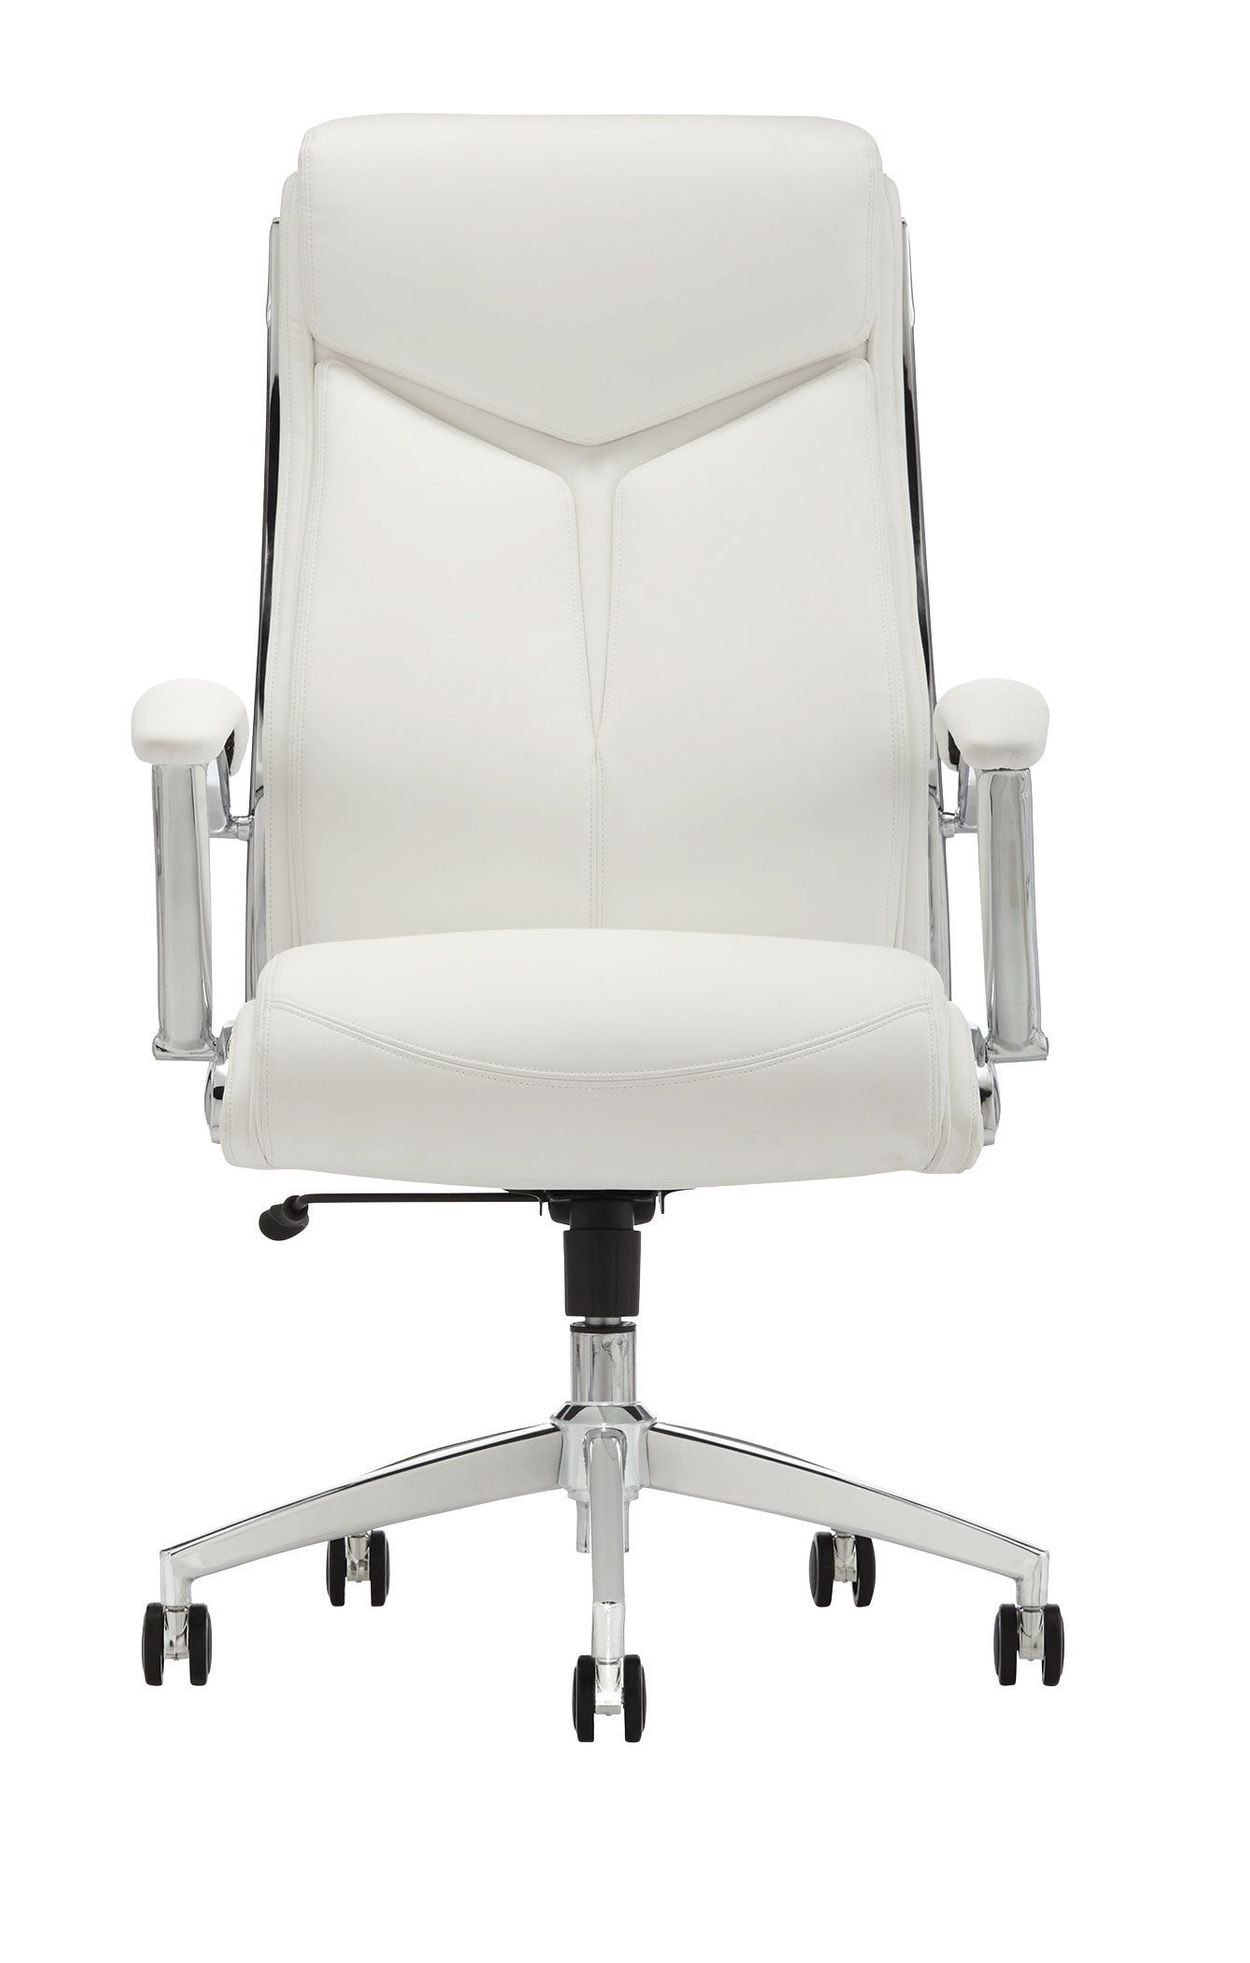 Realspace Verismo Bonded Leather Executive High Back Chair White Chrome Item 747417